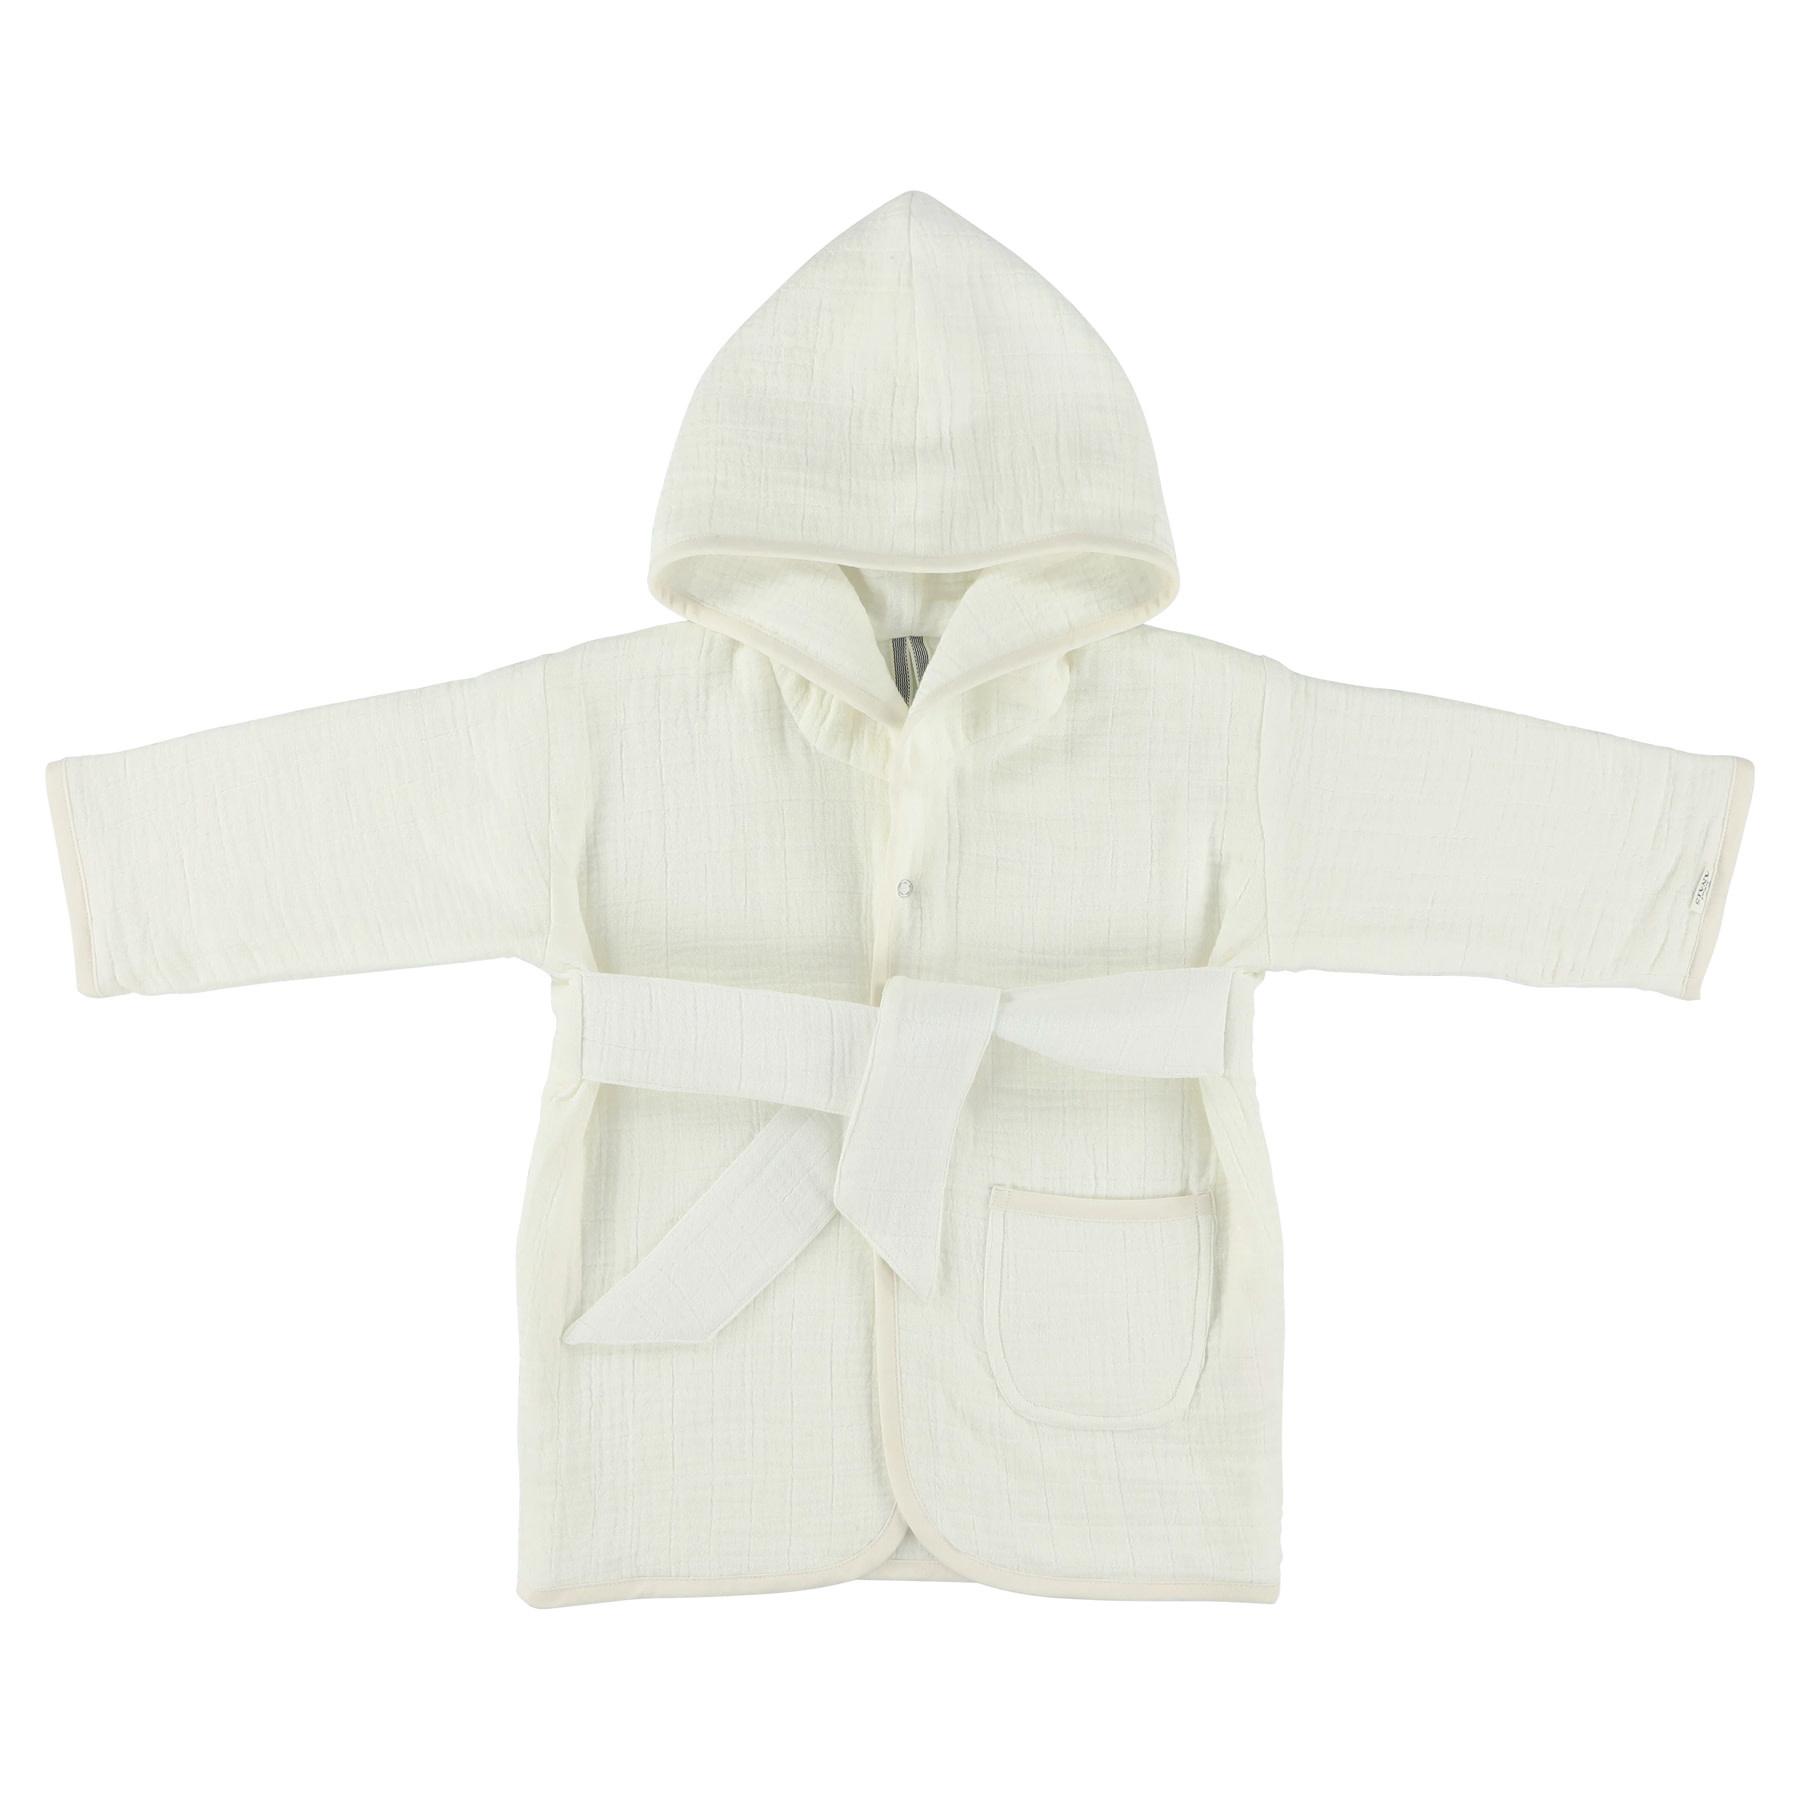 Les Rêves d'Anais Bathrobe 1-2Year Bliss White